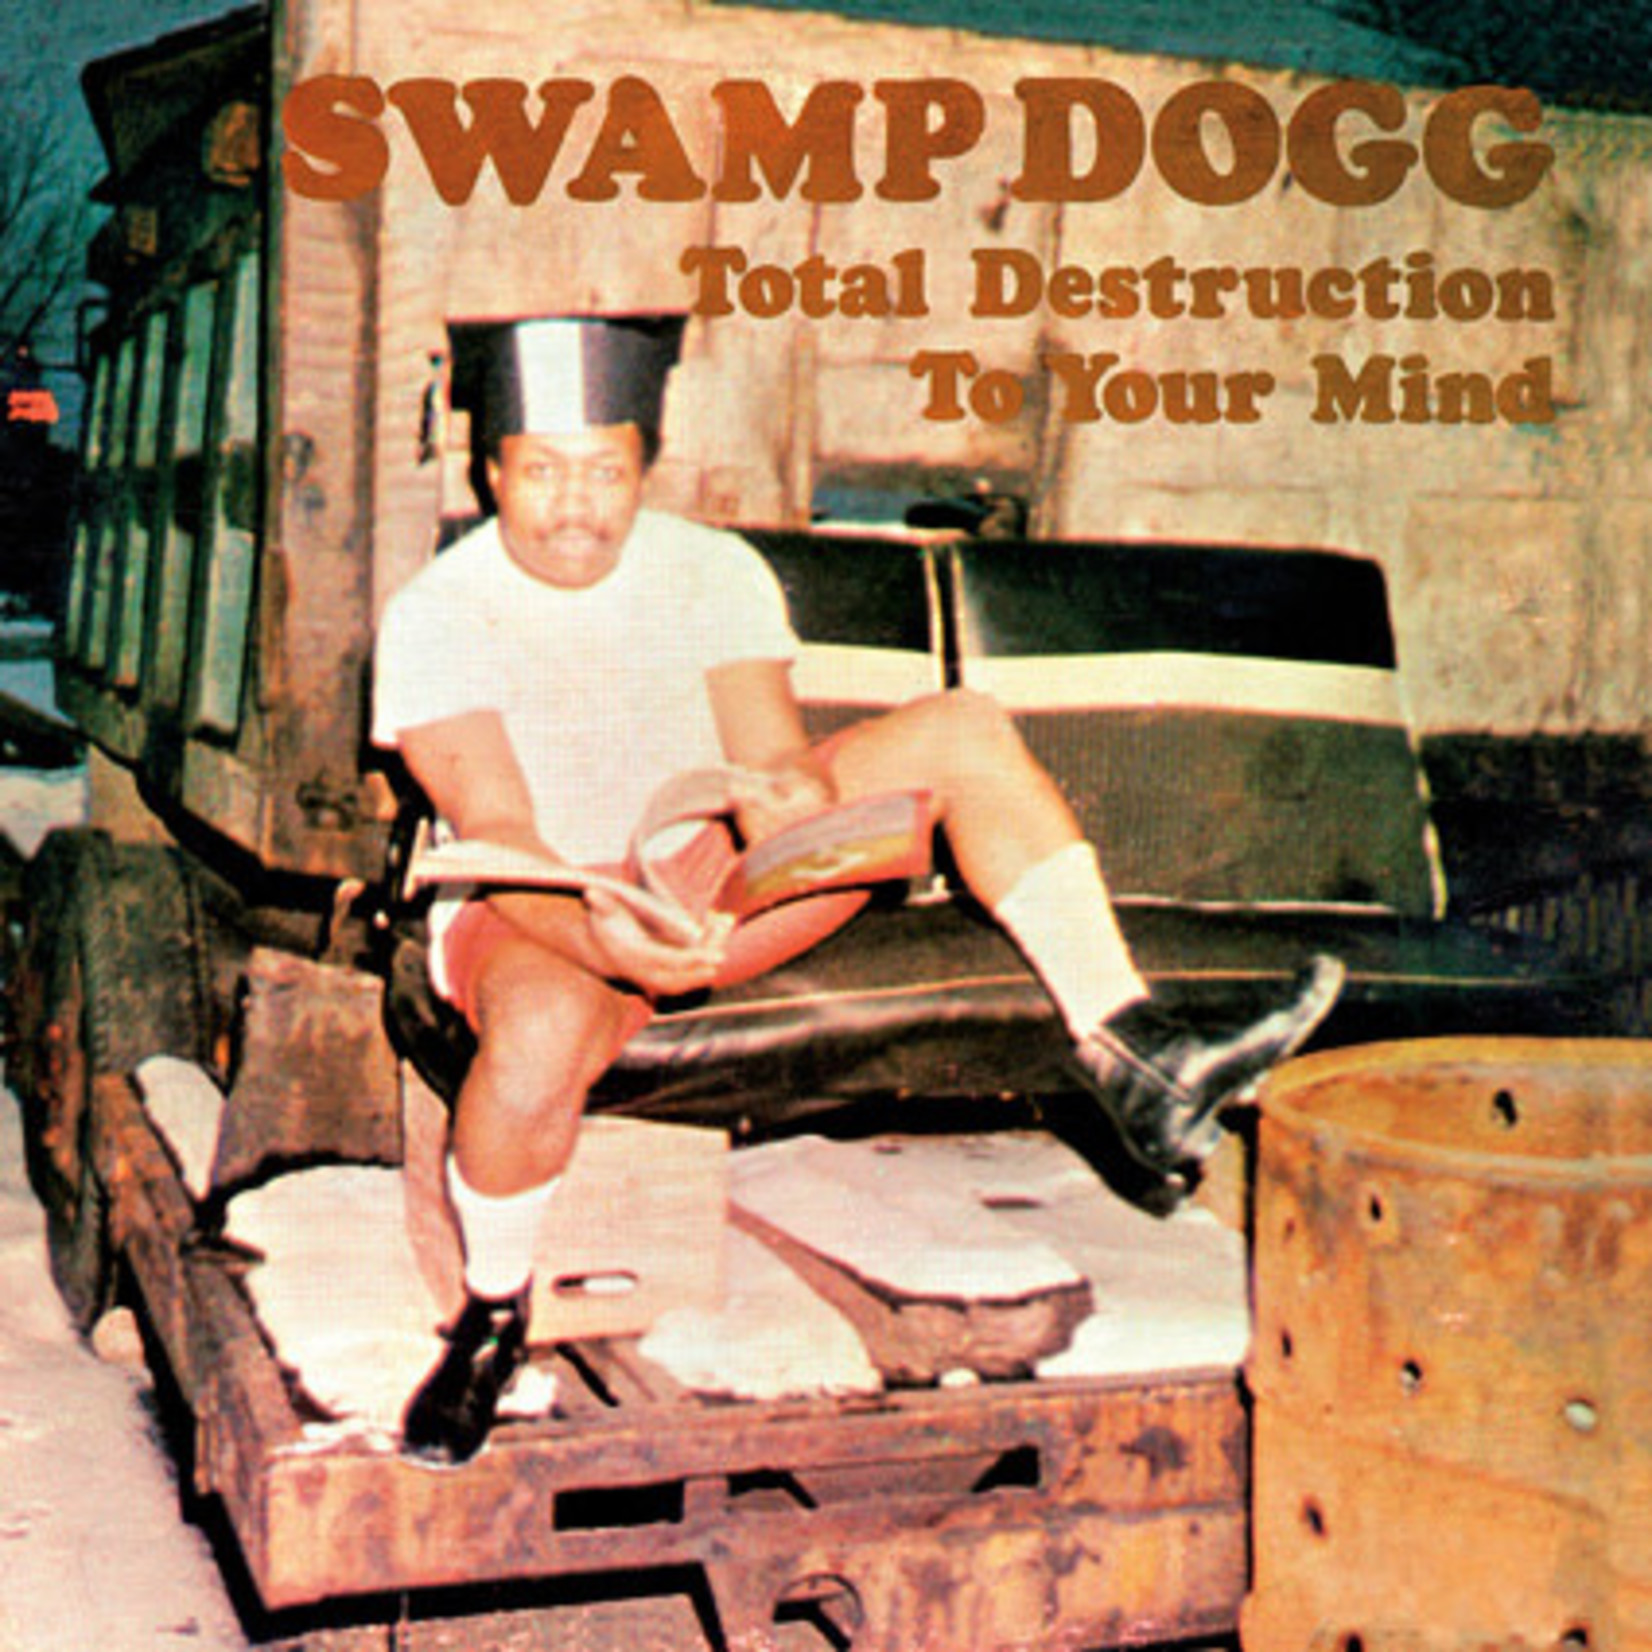 [New] Swamp Dogg: Total Destruction To Your Mind